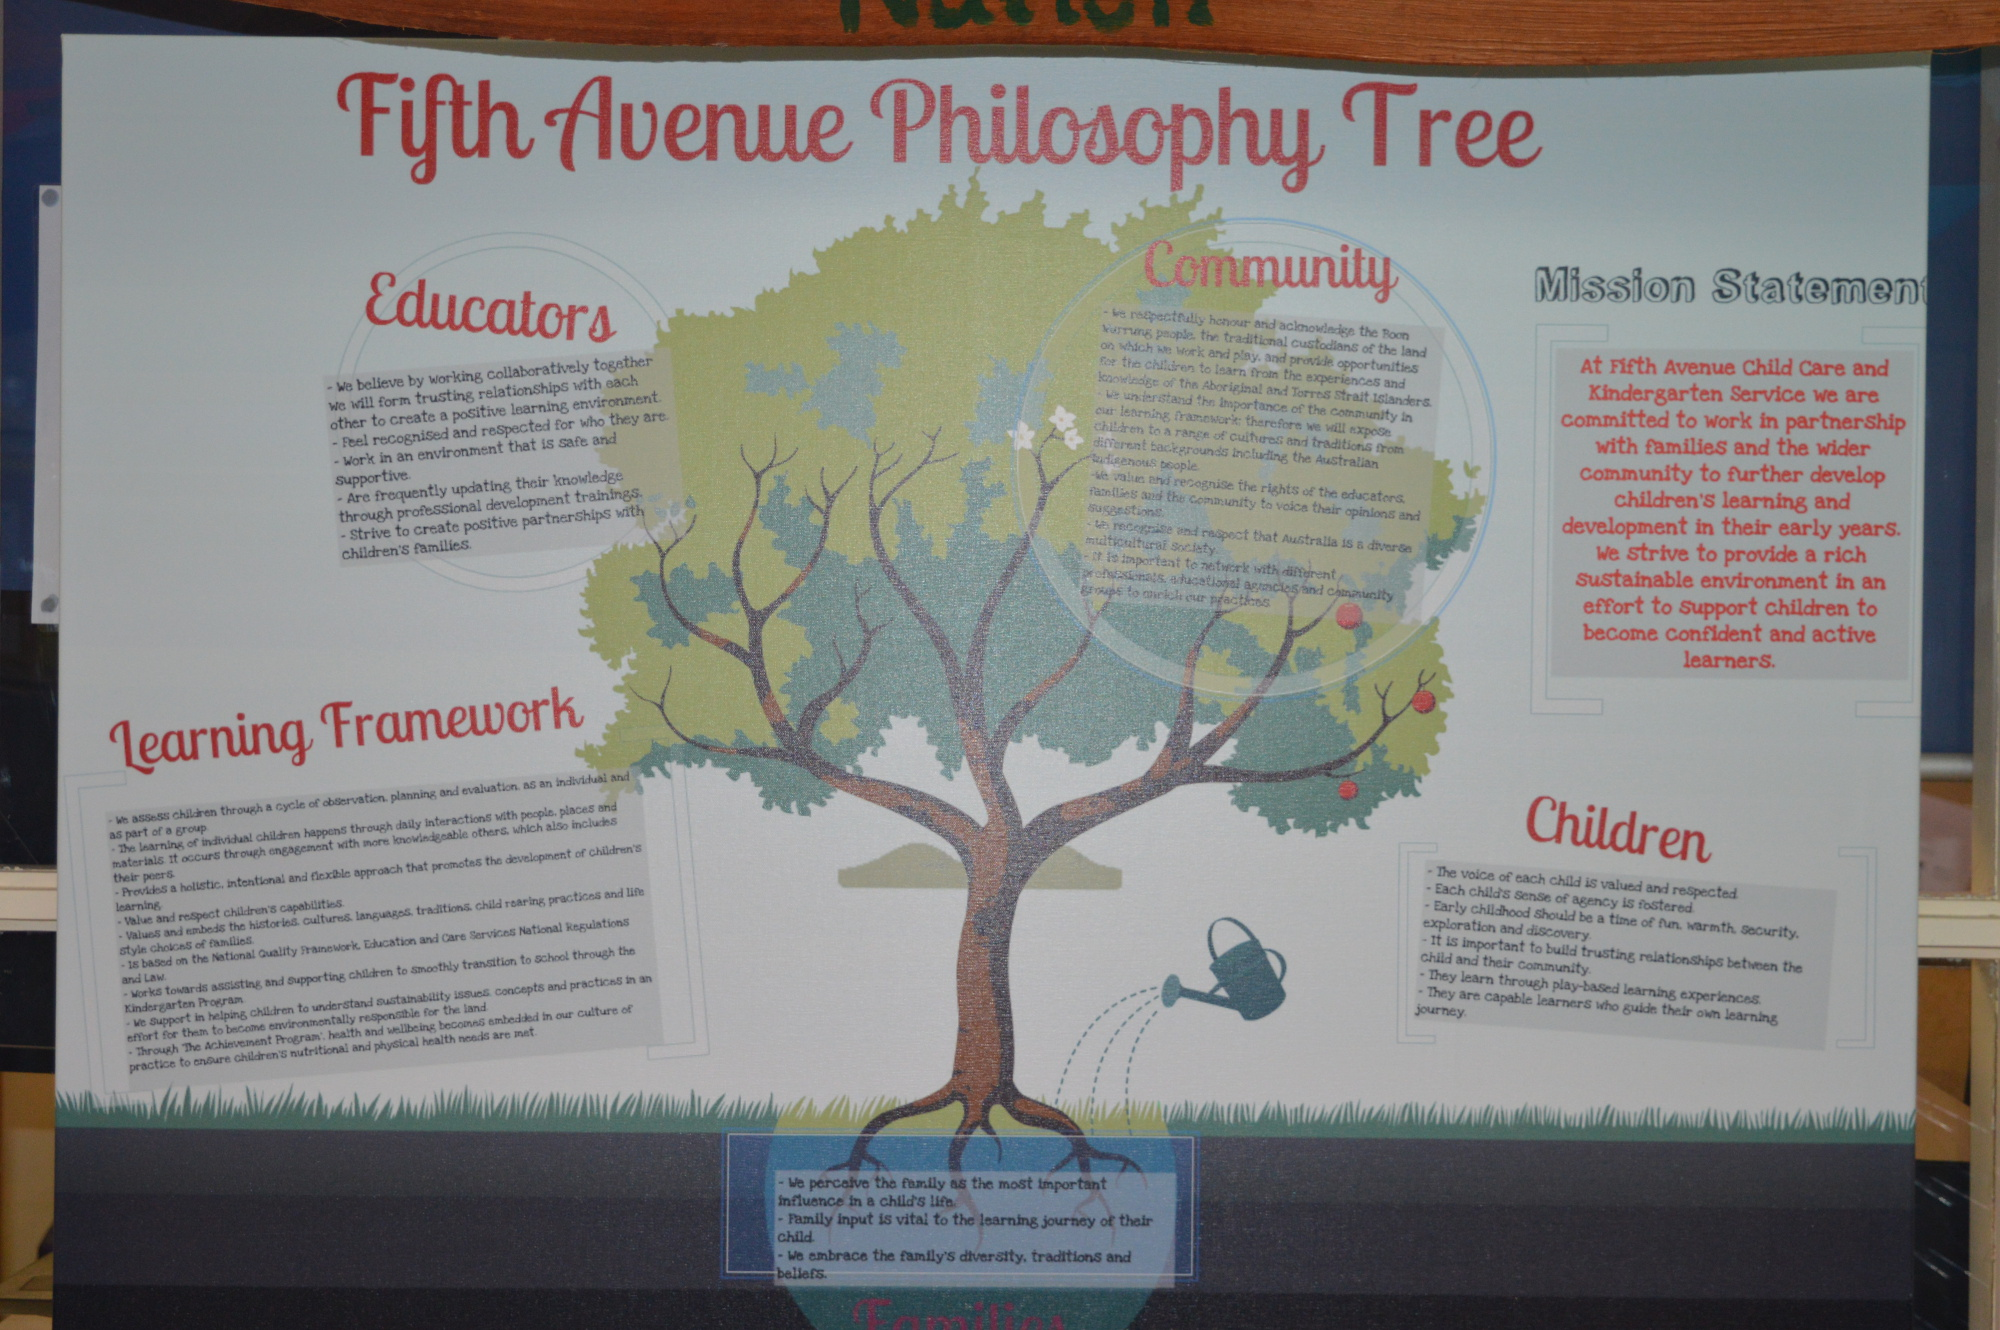 Our Philosophy Tree